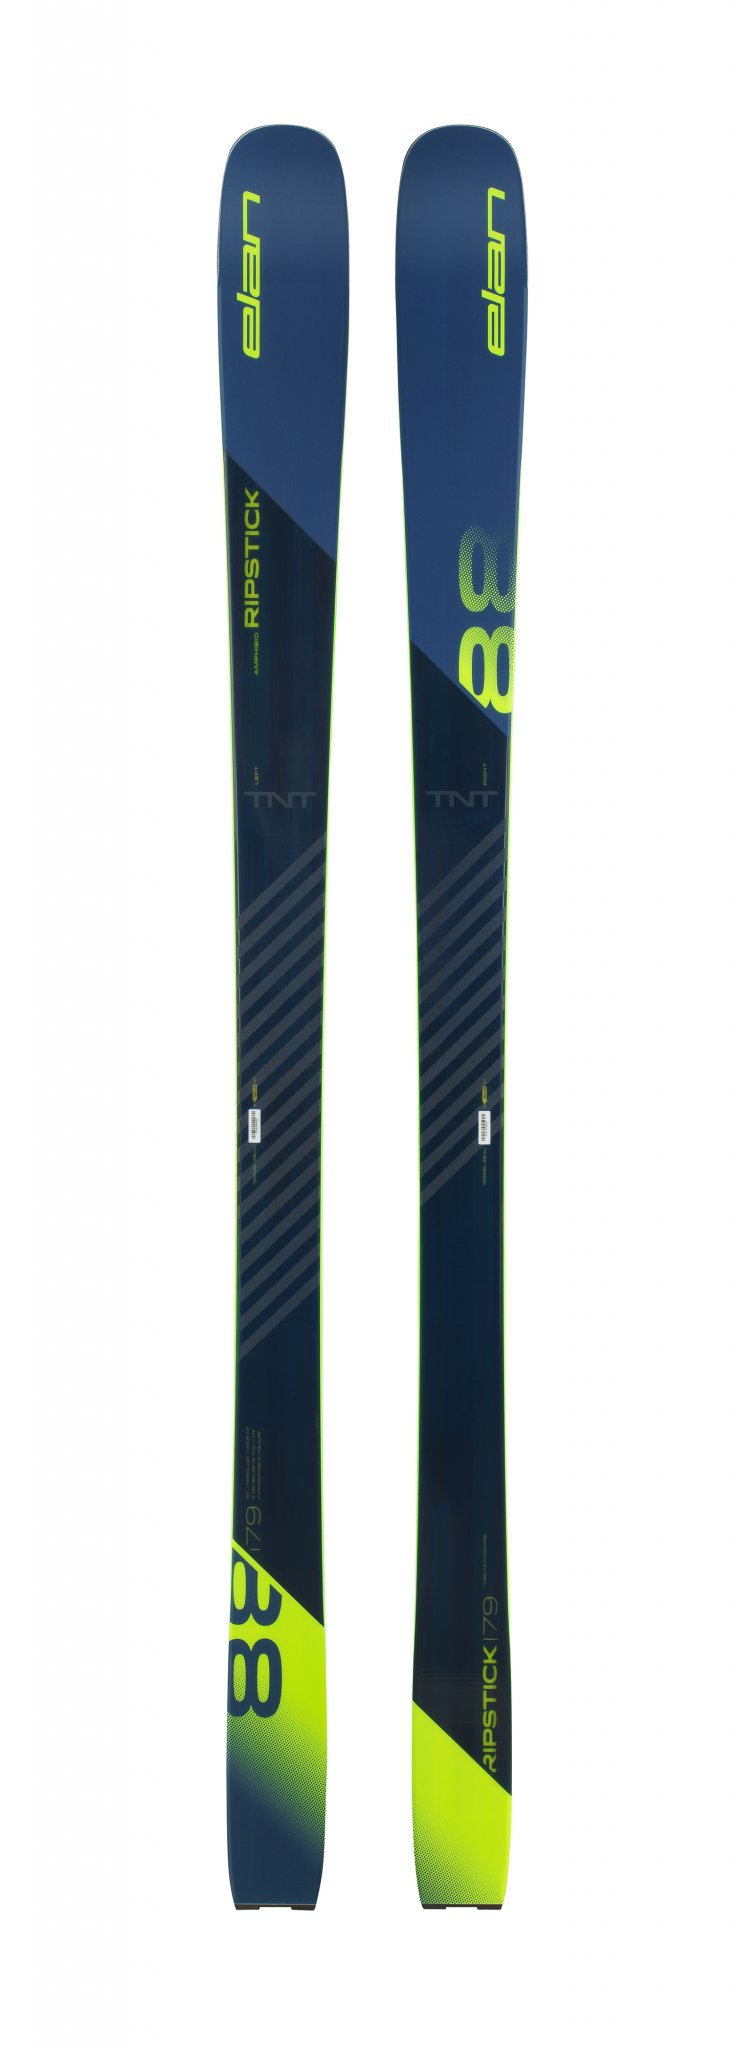 Image 0 of ELAN - RIPSTICK 88 SKIS - 2020